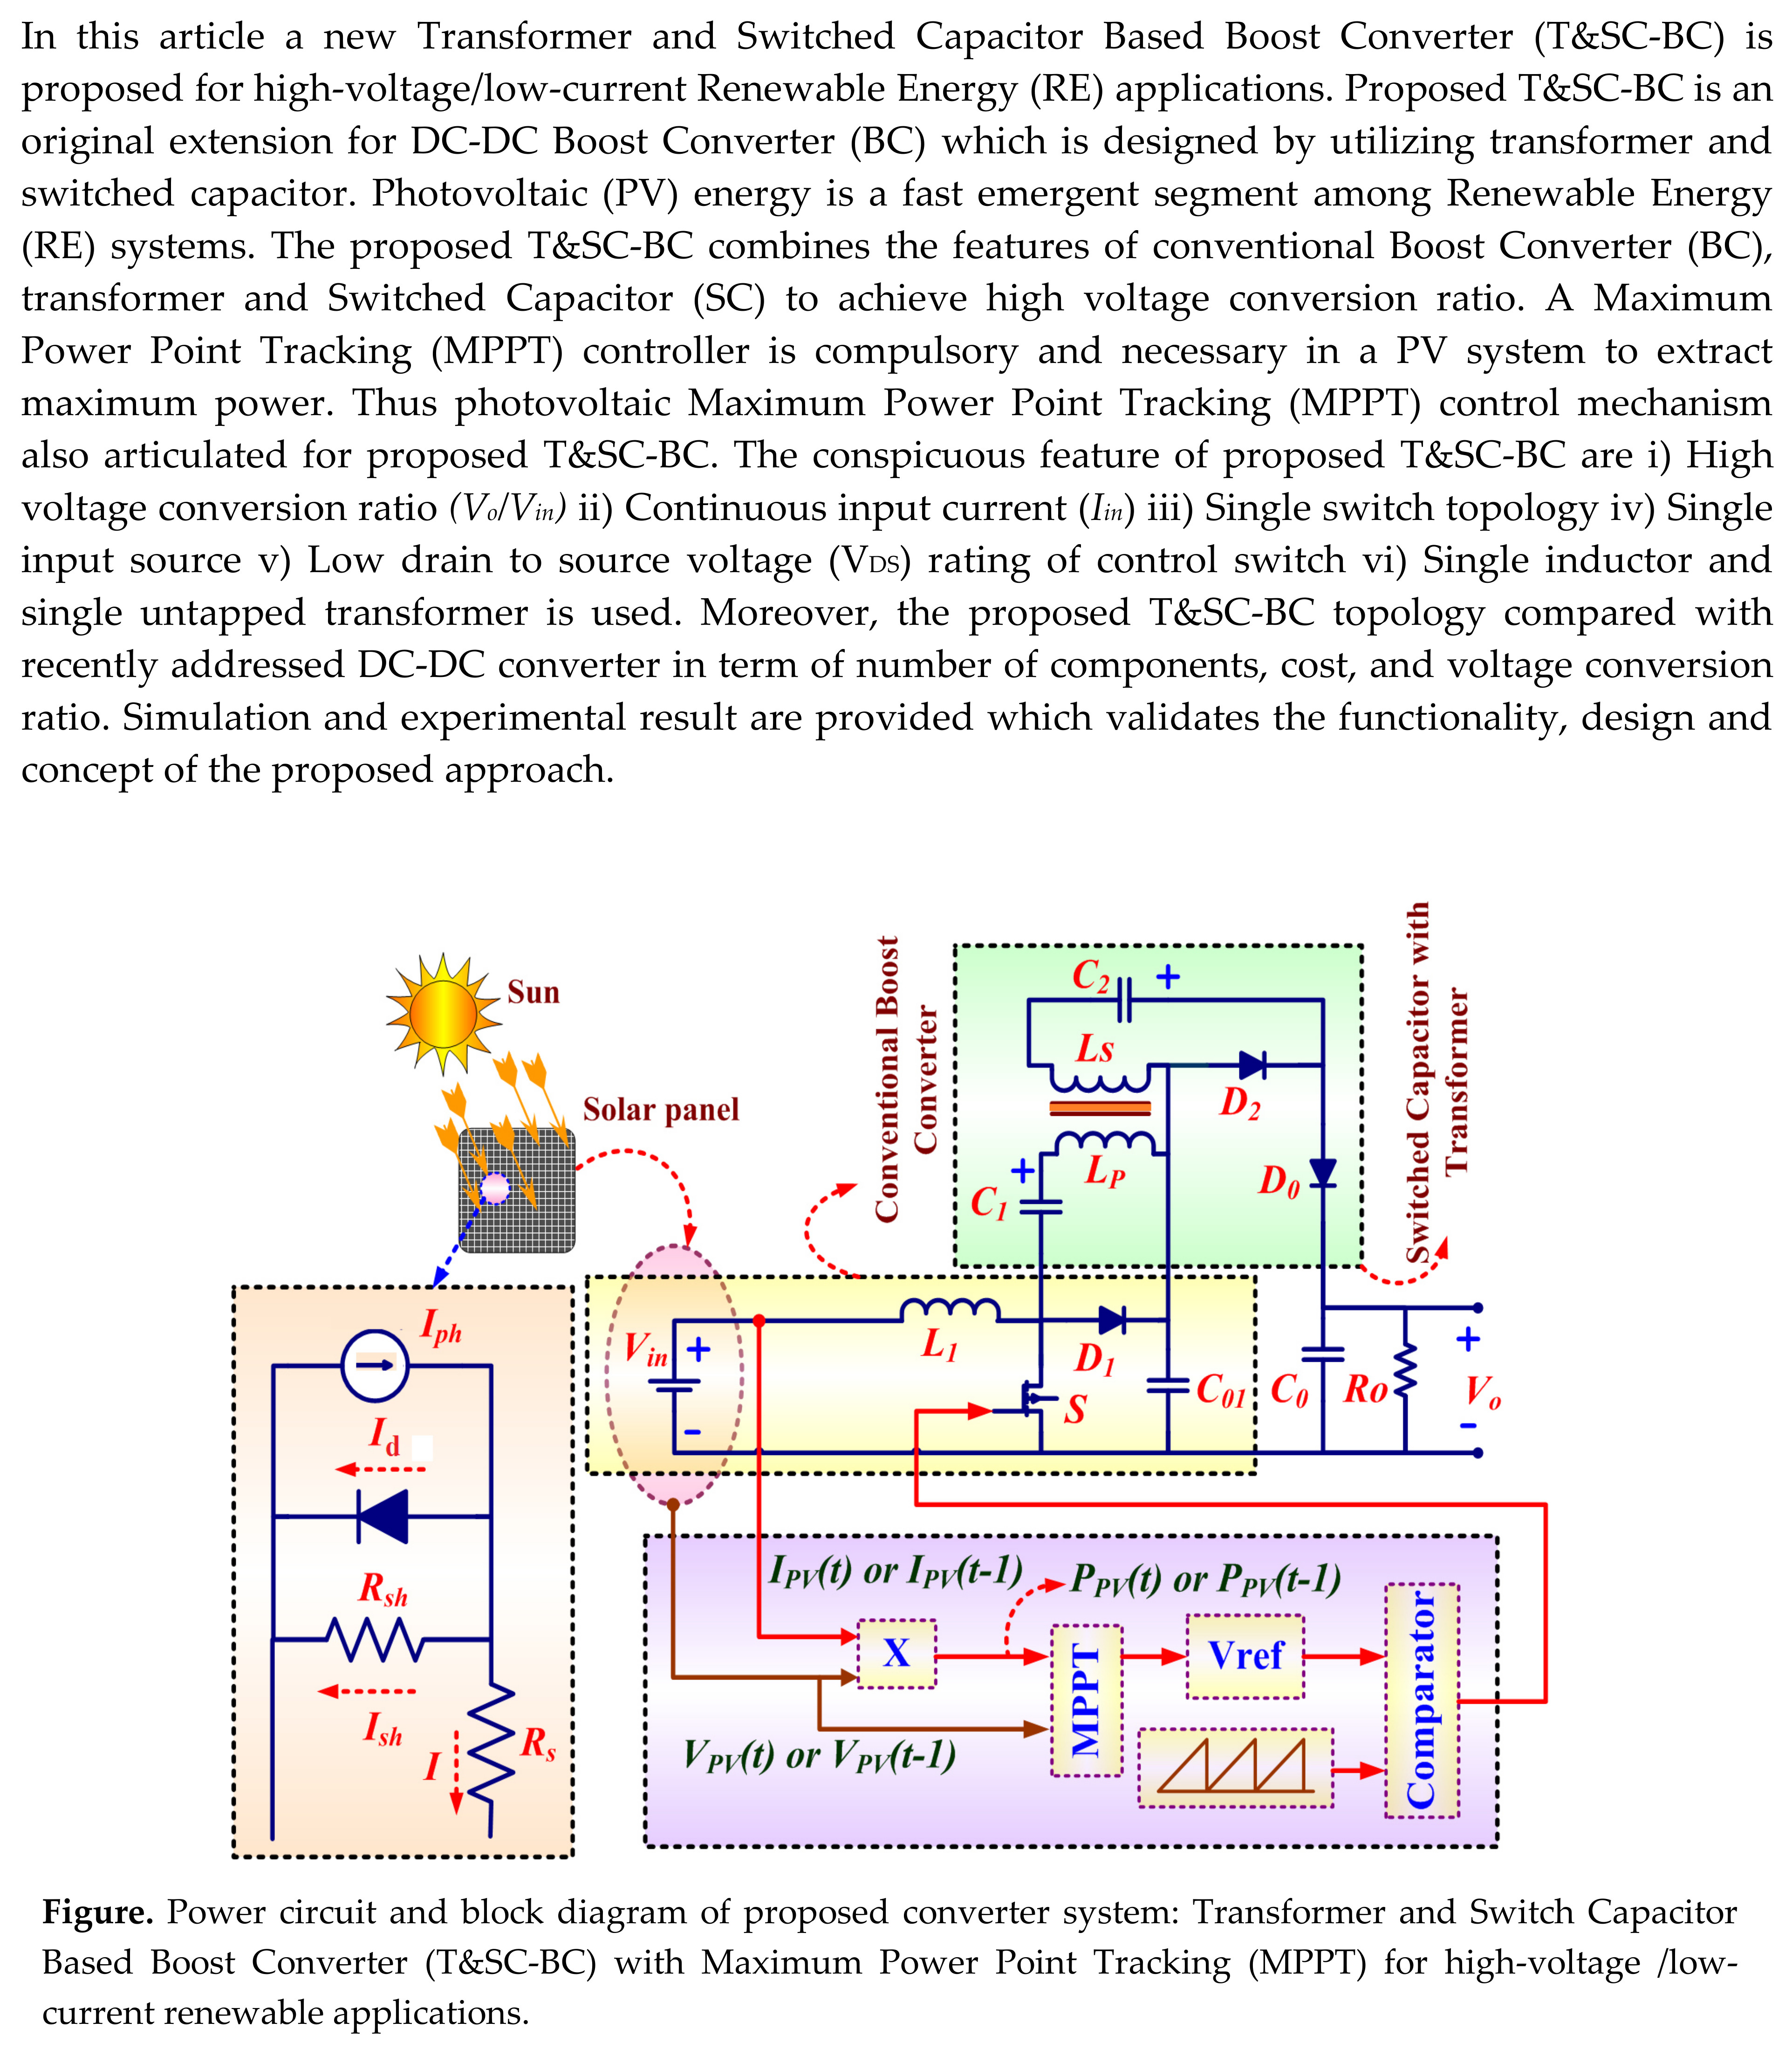 Energies Free Full Text An Original Transformer And Switched Block Diagram Of Graphical Abstract